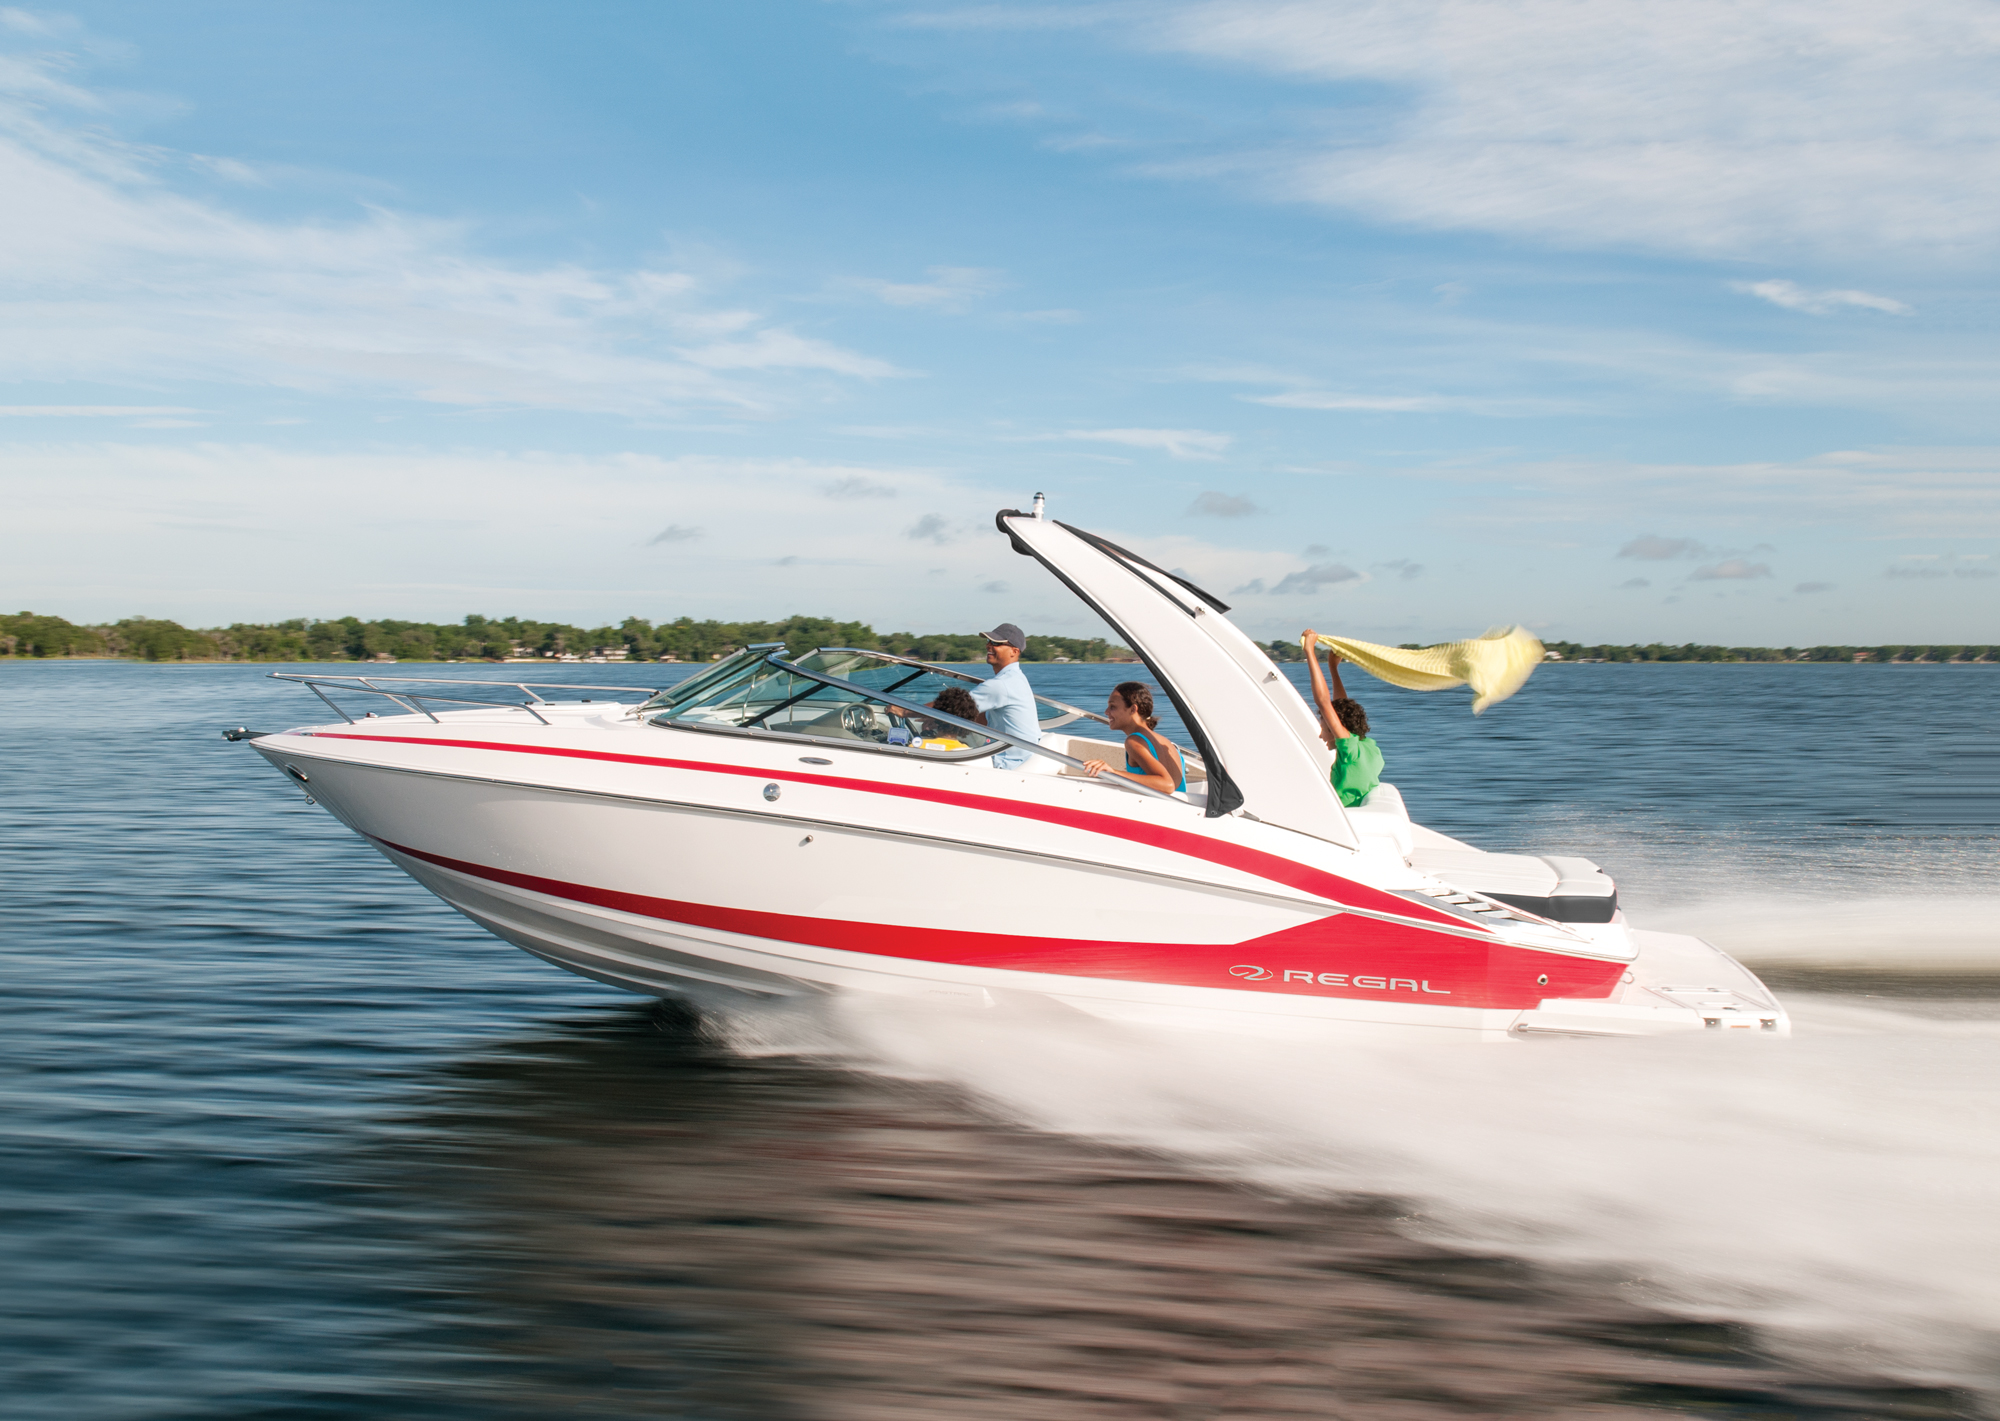 2550 - Regal Boats Overview